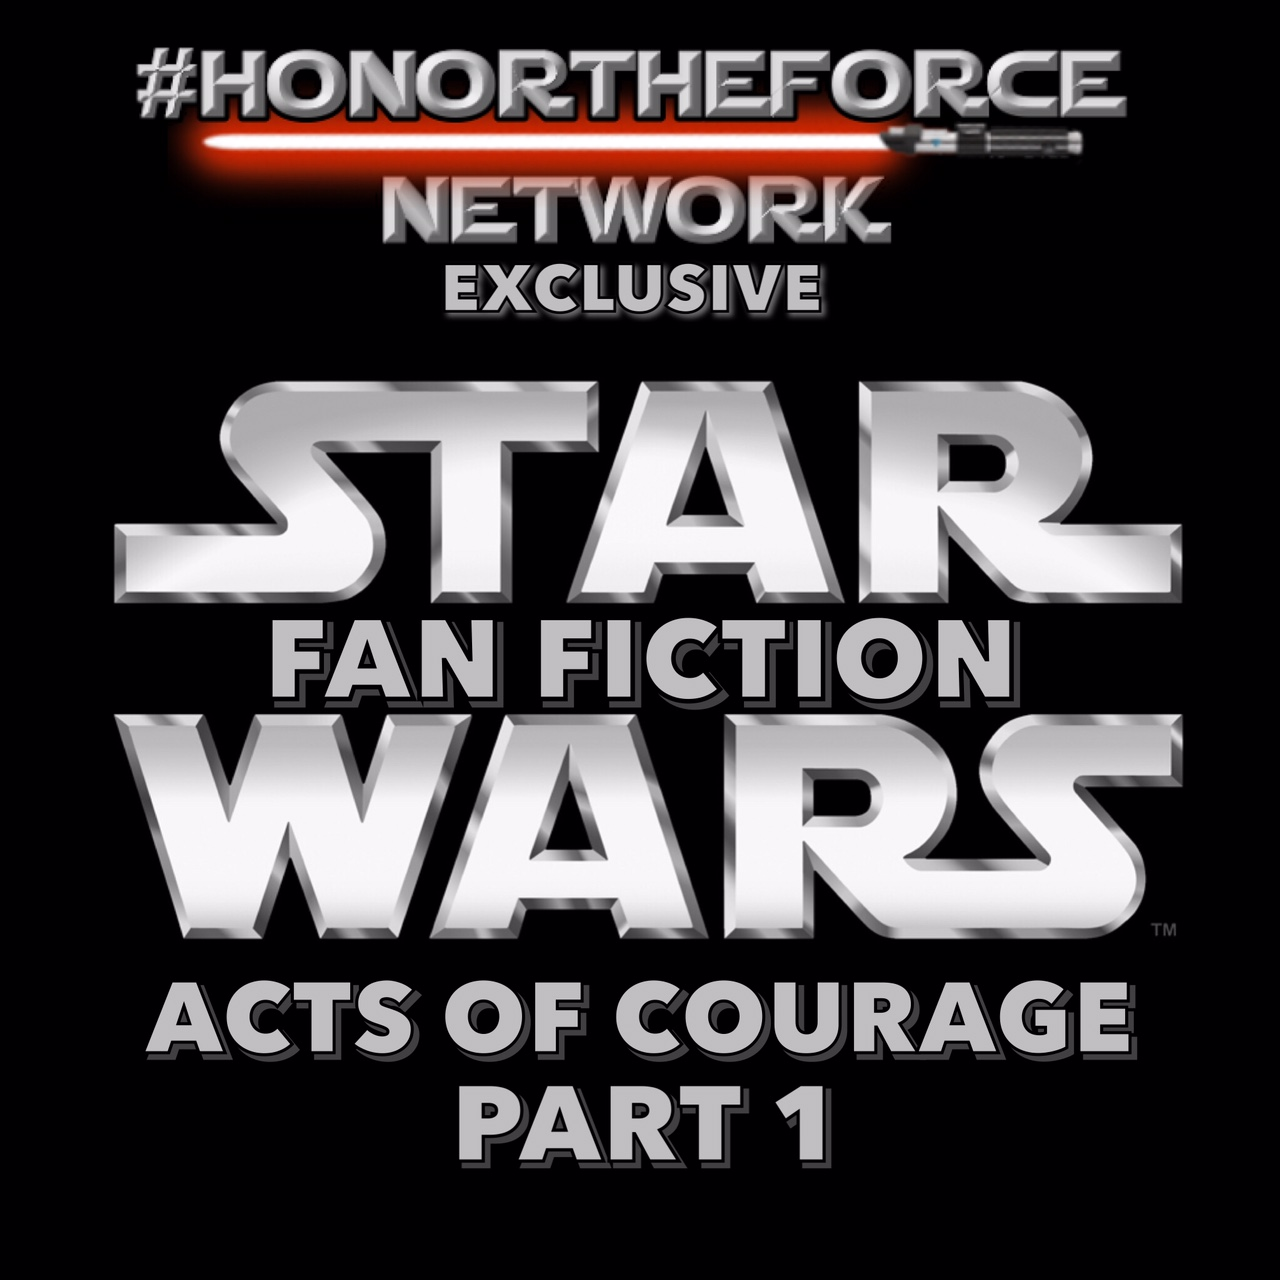 Star Wars: Acts of Courage Part 1